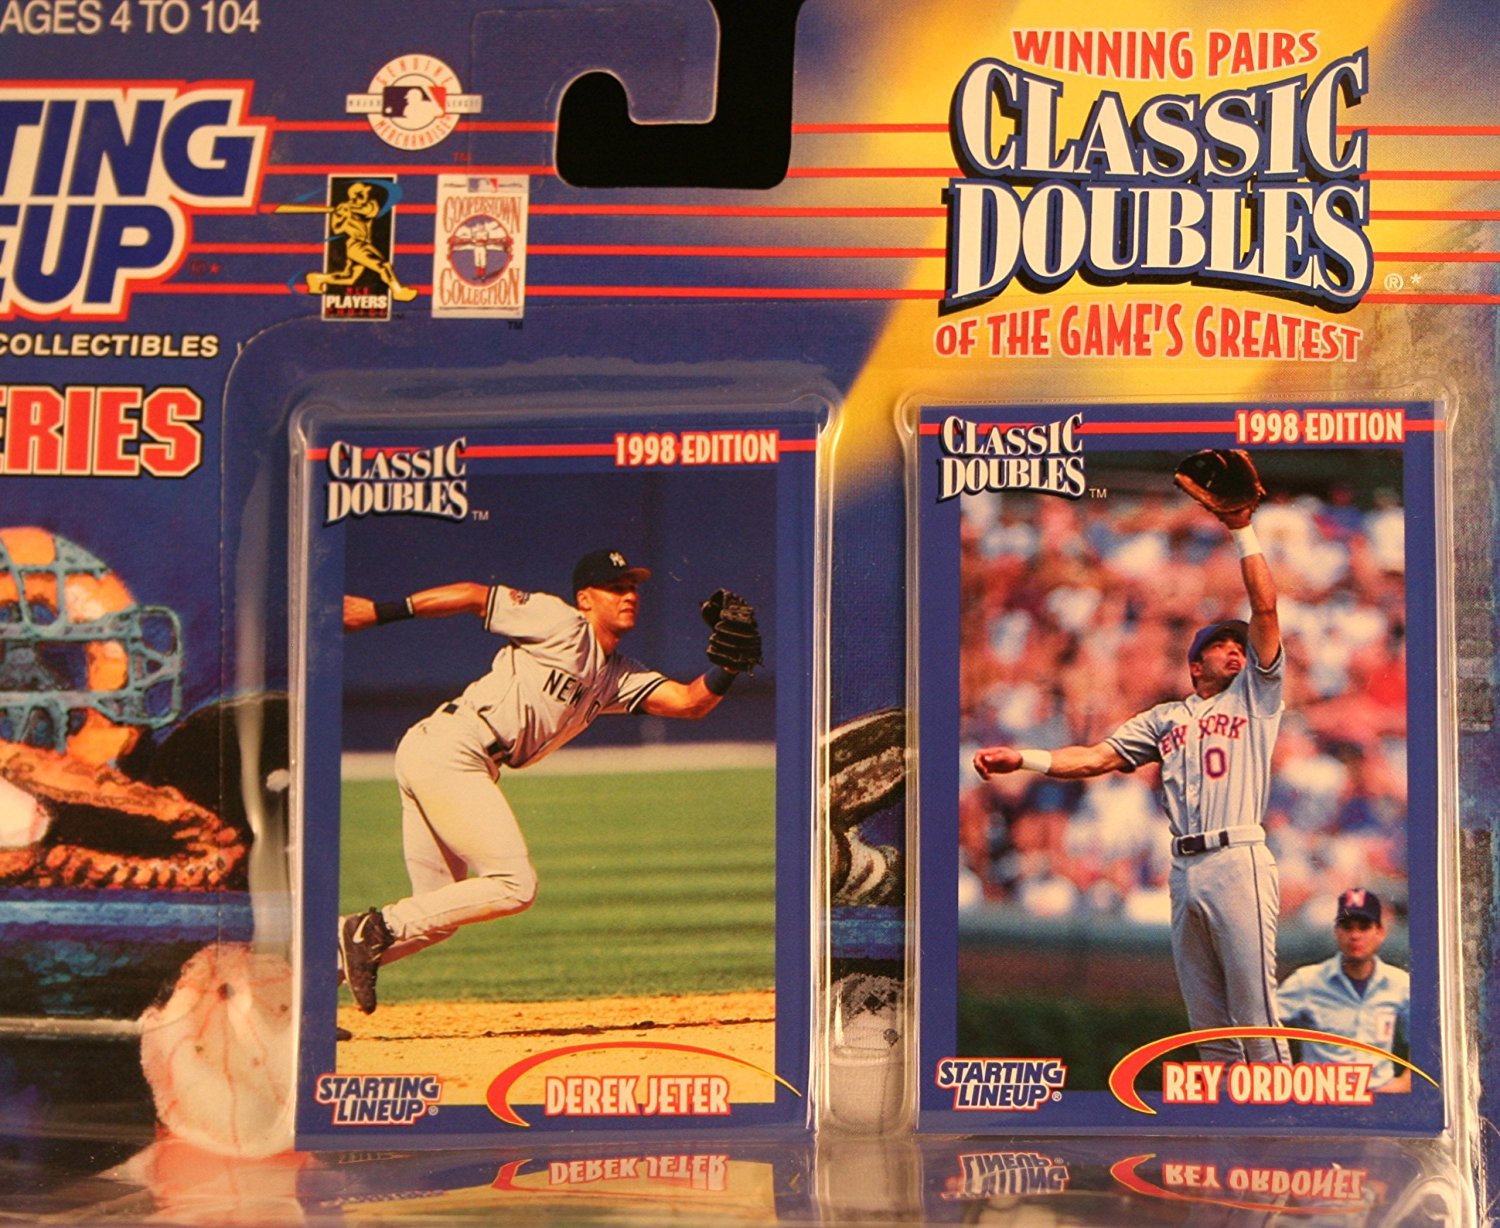 1998 MLB Starting Lineup Classic Doubles - Derek Jeter New York Yankees & Rey Ordonez New York Mets